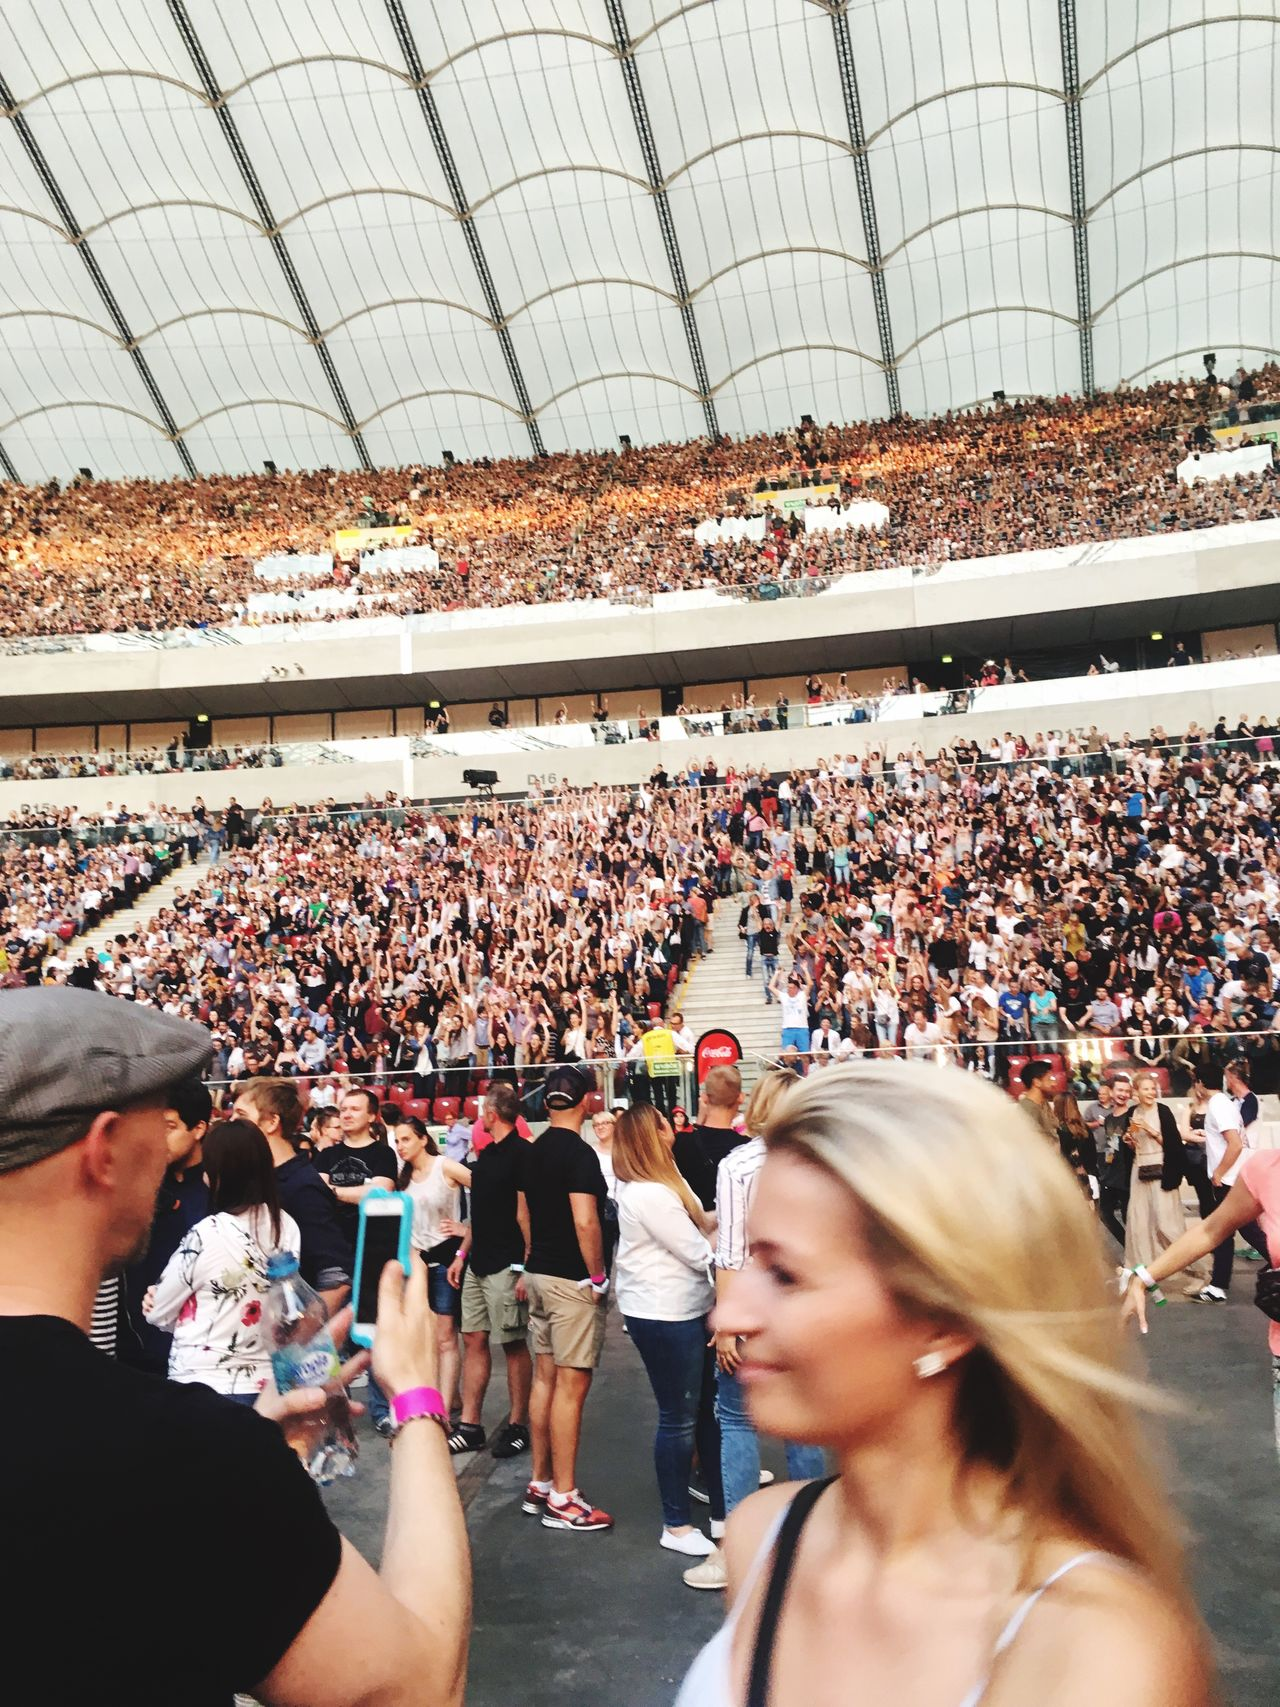 Coldplay Concert  Large Group Of People Crowd Togetherness Celebration Real People Audience Event Enjoyment Celebration Event Leisure Activity Spectator Men Day Women Arts Culture And Entertainment Performance Stadium Fan - Enthusiast Popular Music Concert Outdoors